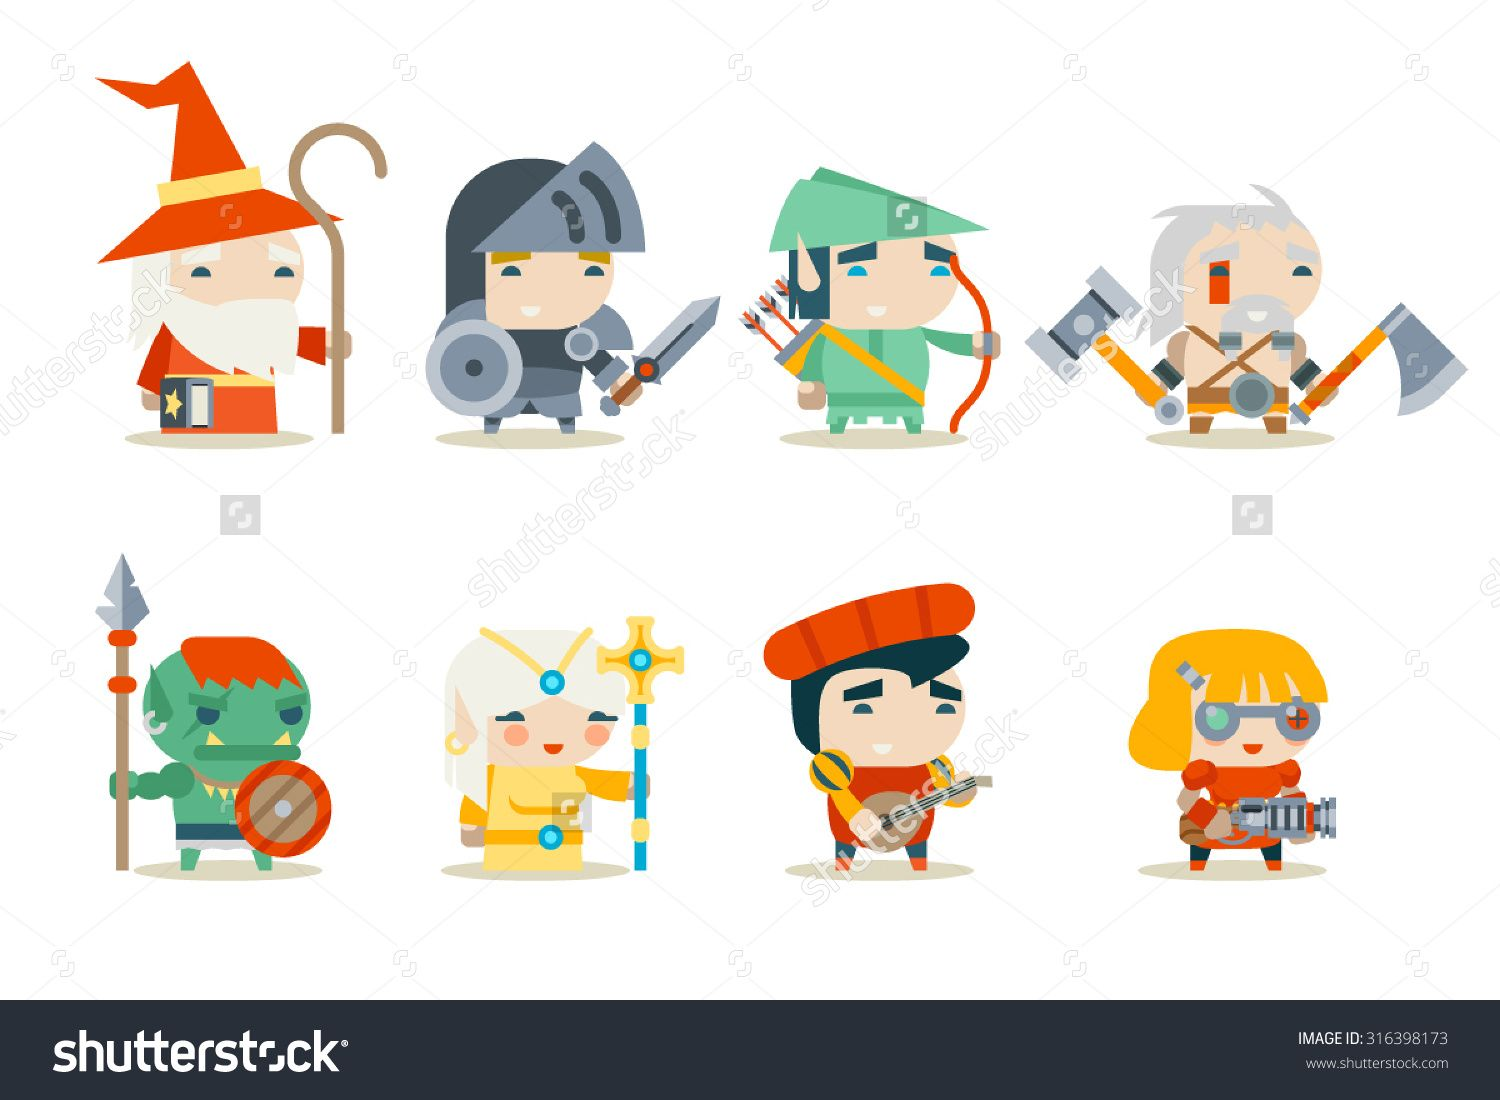 Character Design Icon : Lurk character art style brainstorm video game graphics